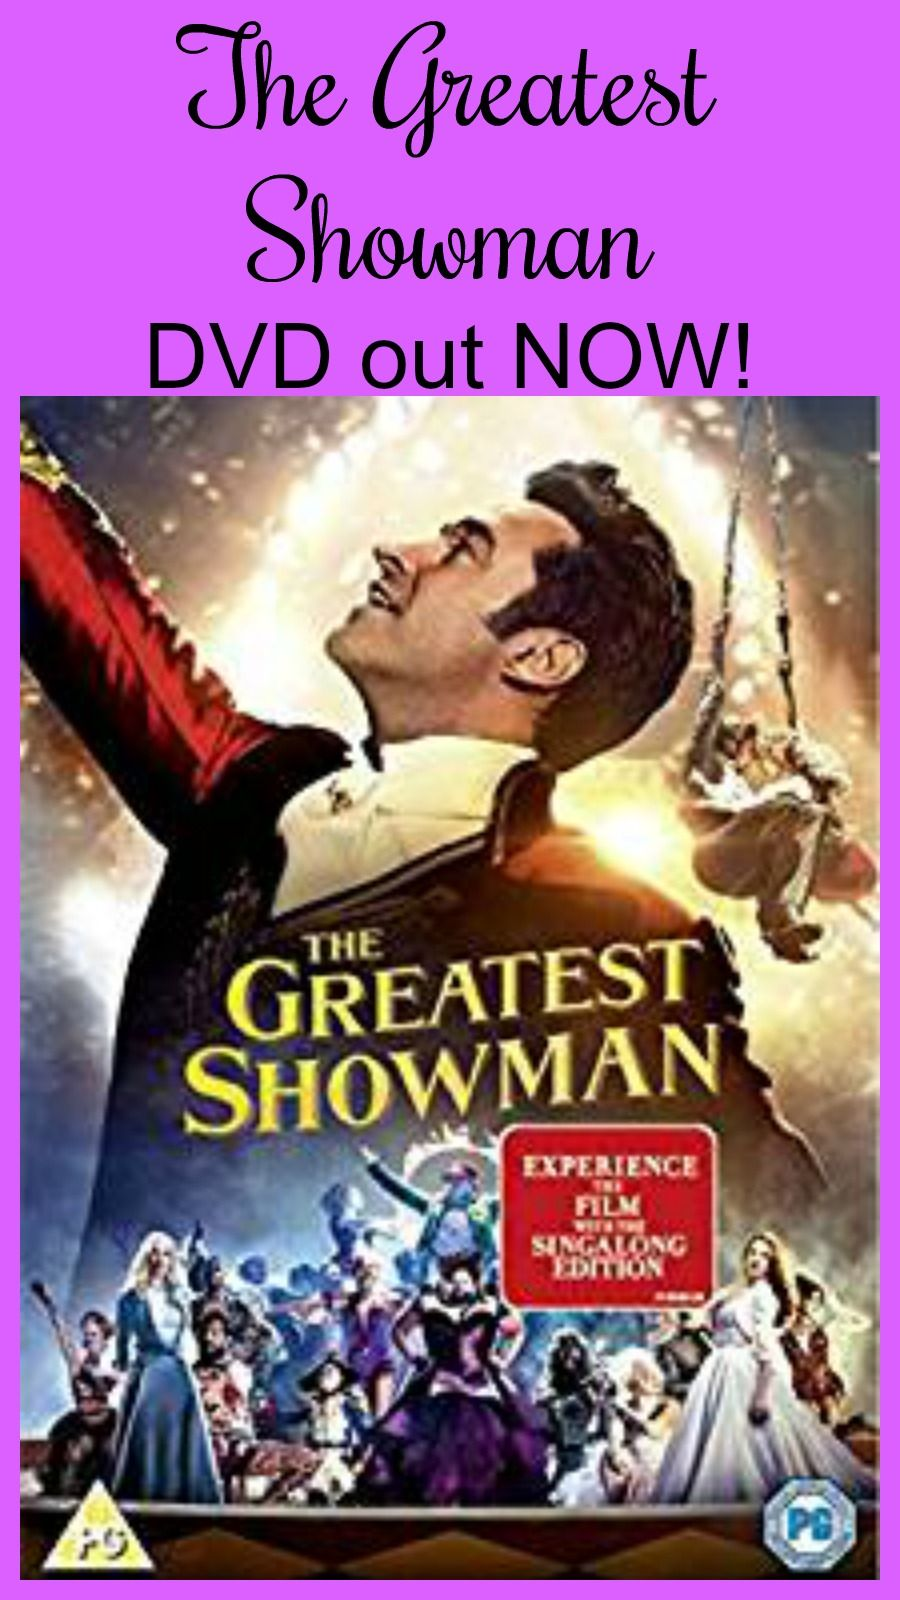 Finally, it's here! The Greatest Showman Out on DVD Now.